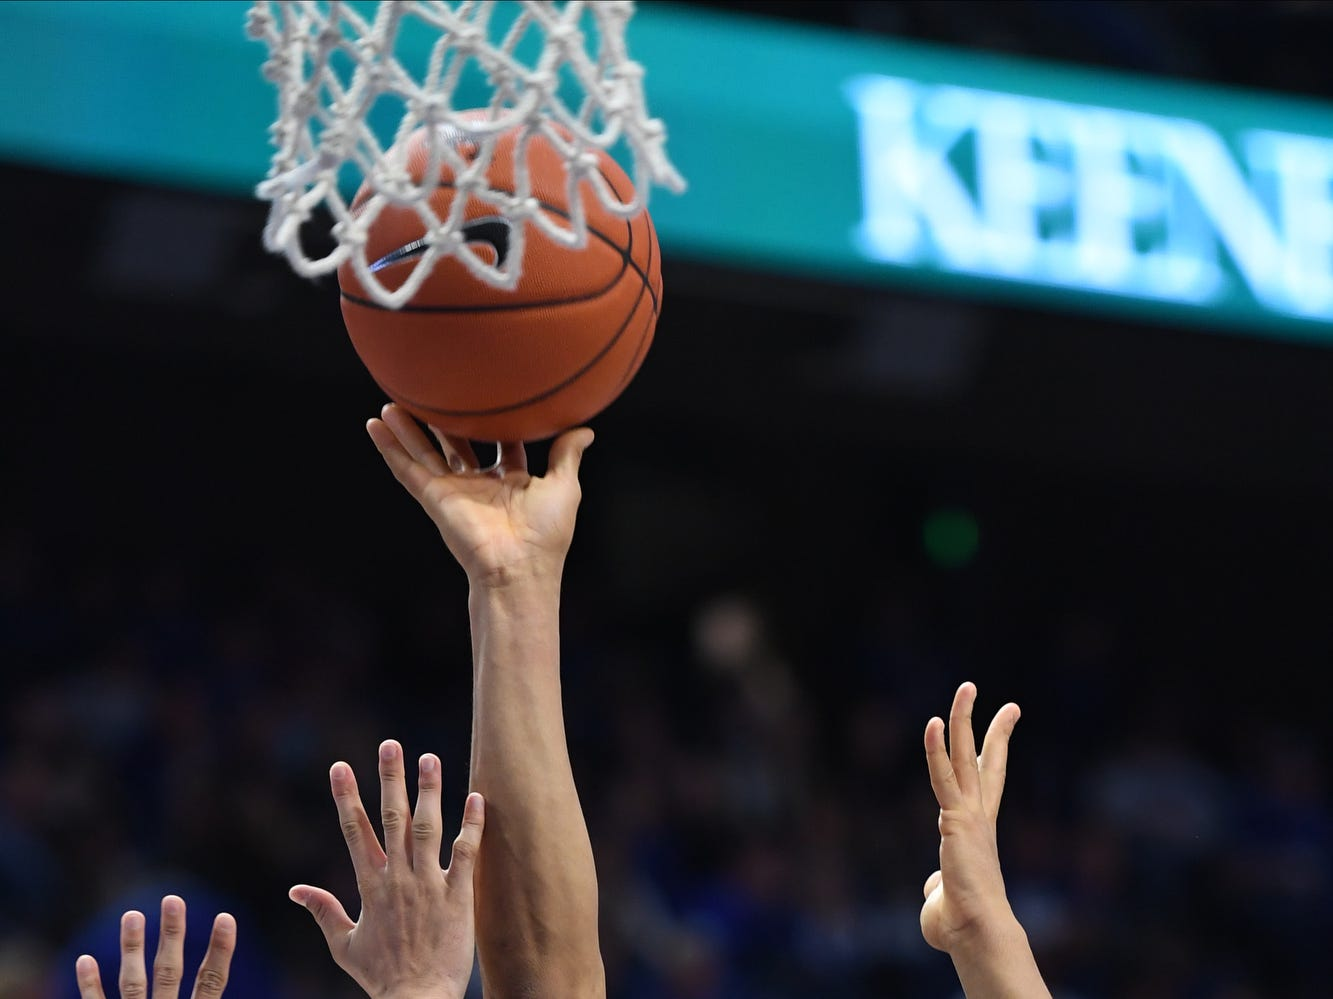 Keldon Johnson puts up the ball during the University of Kentucky basketball game against Southern Illinois at Rupp Arena in Lexington on Friday, Nov. 9, 2018.